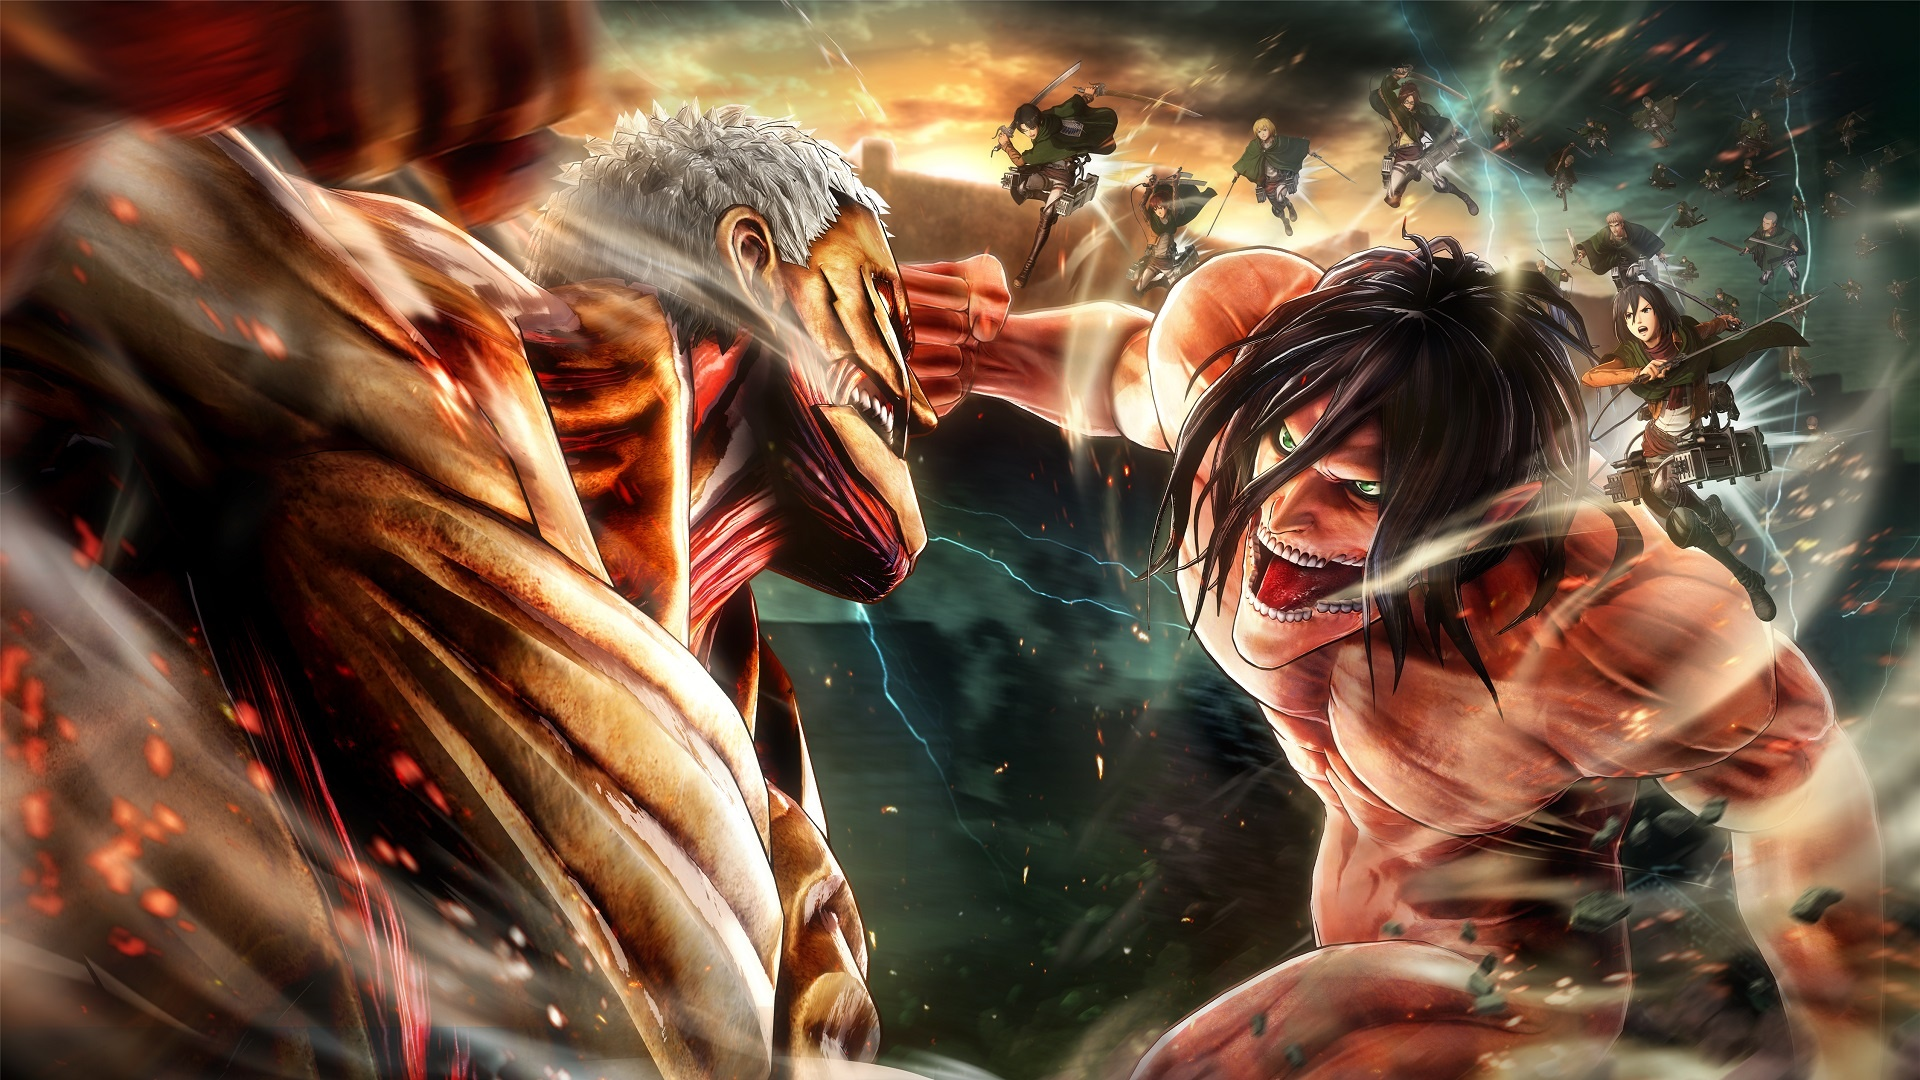 Attack on Titan 2 Opens Strong on Japanese Sales Charts